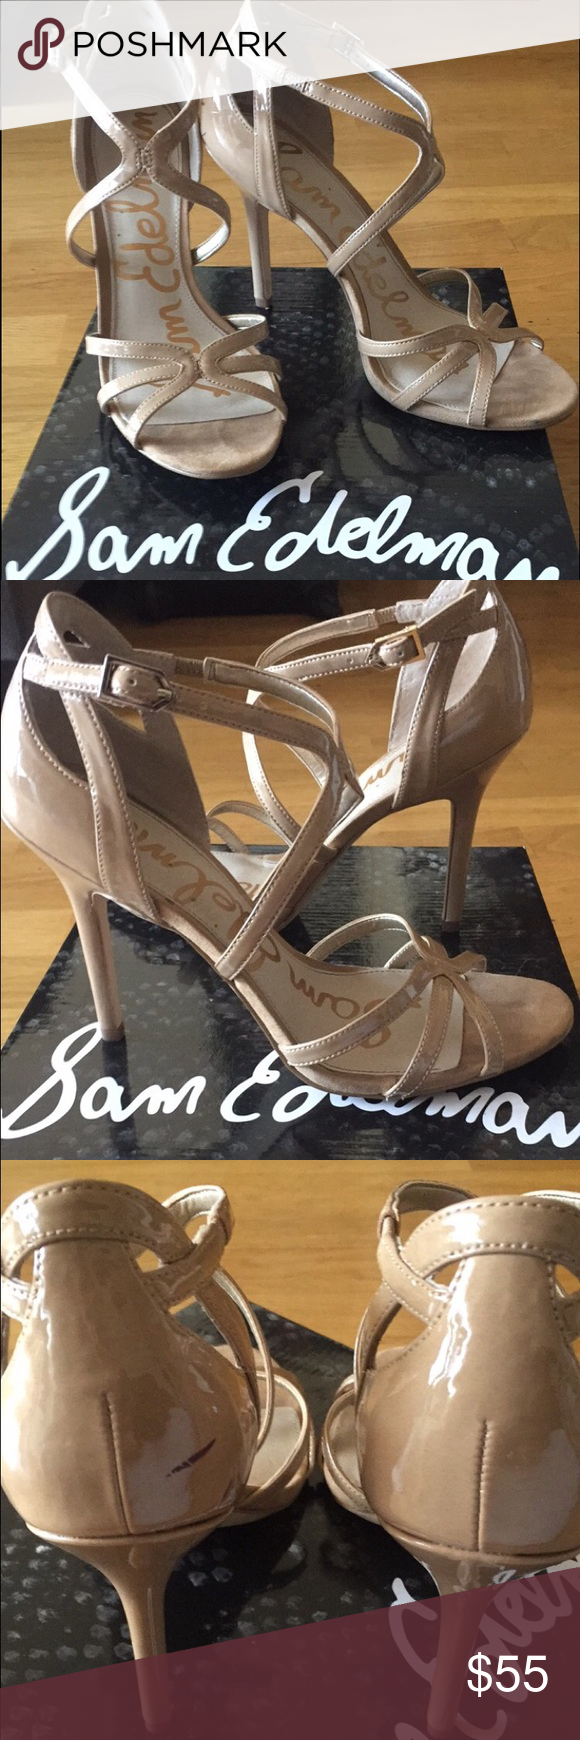 Sam Edelman Nude Sandals Only worn once! Perfect condition except one little scuff mark shown in pictures (I think there's a trick out there to remove it). Sam Edelman Shoes Sandals